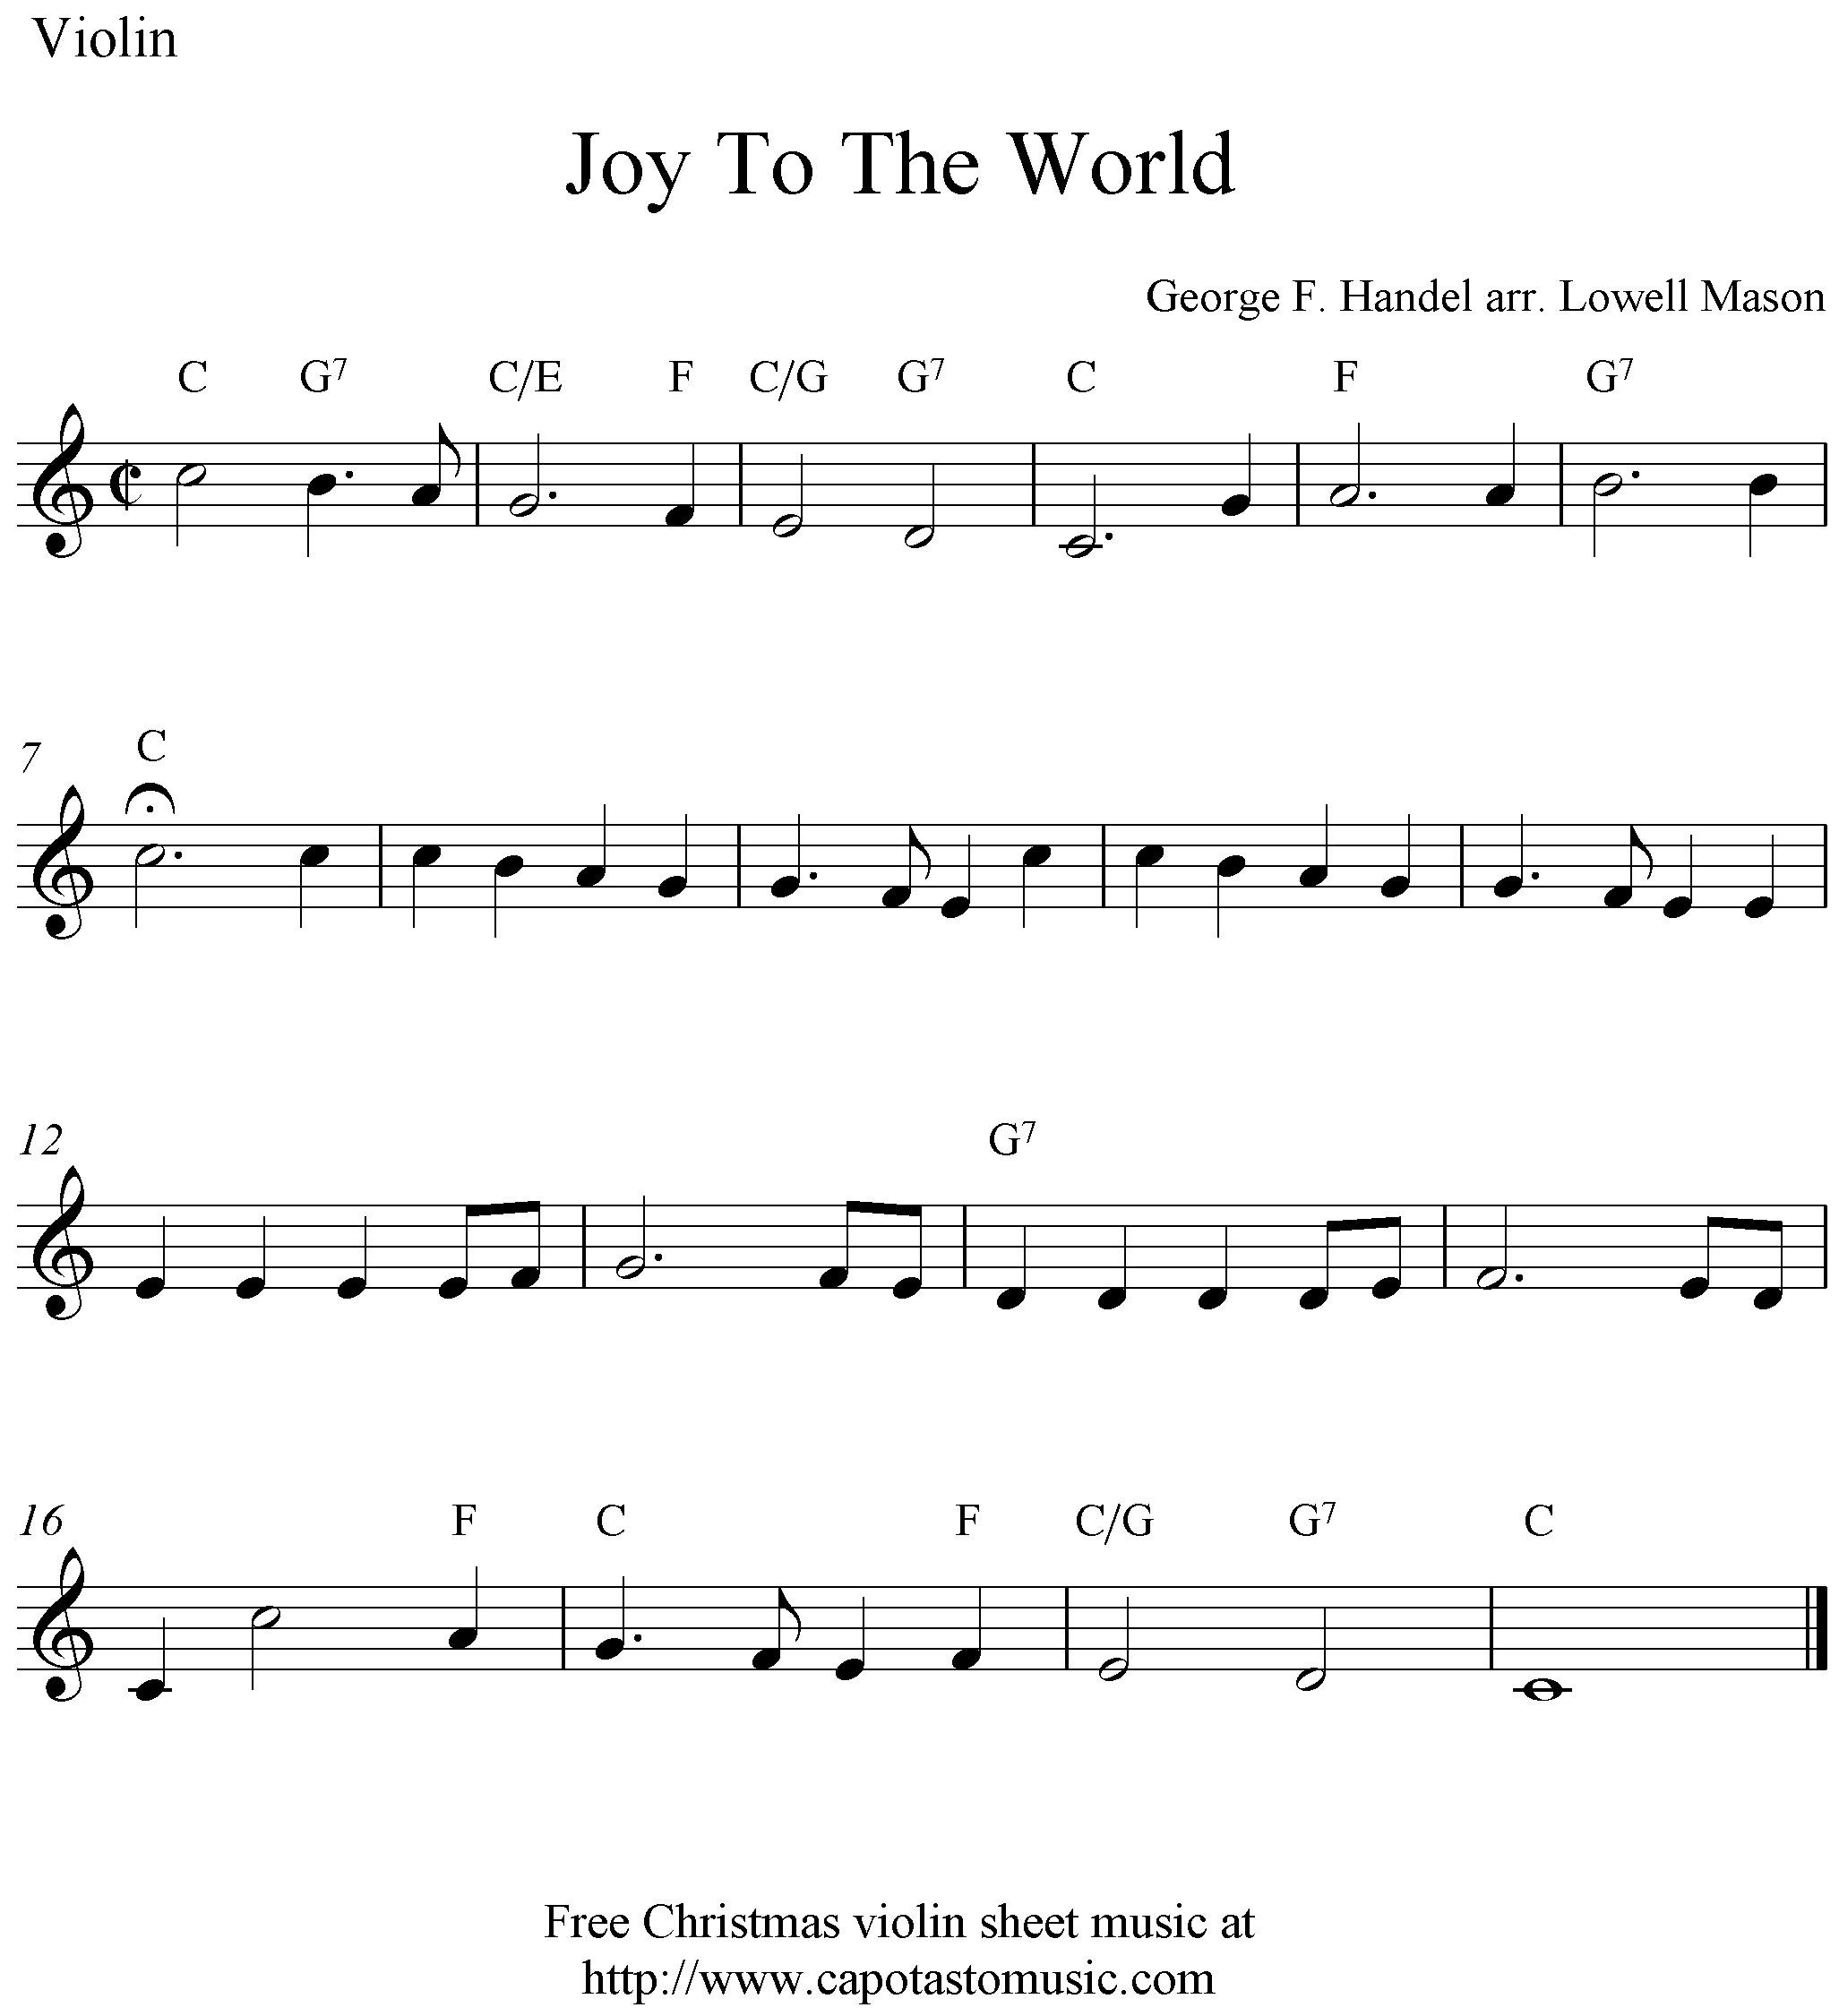 Download Free Christmas Flute Sheet Music